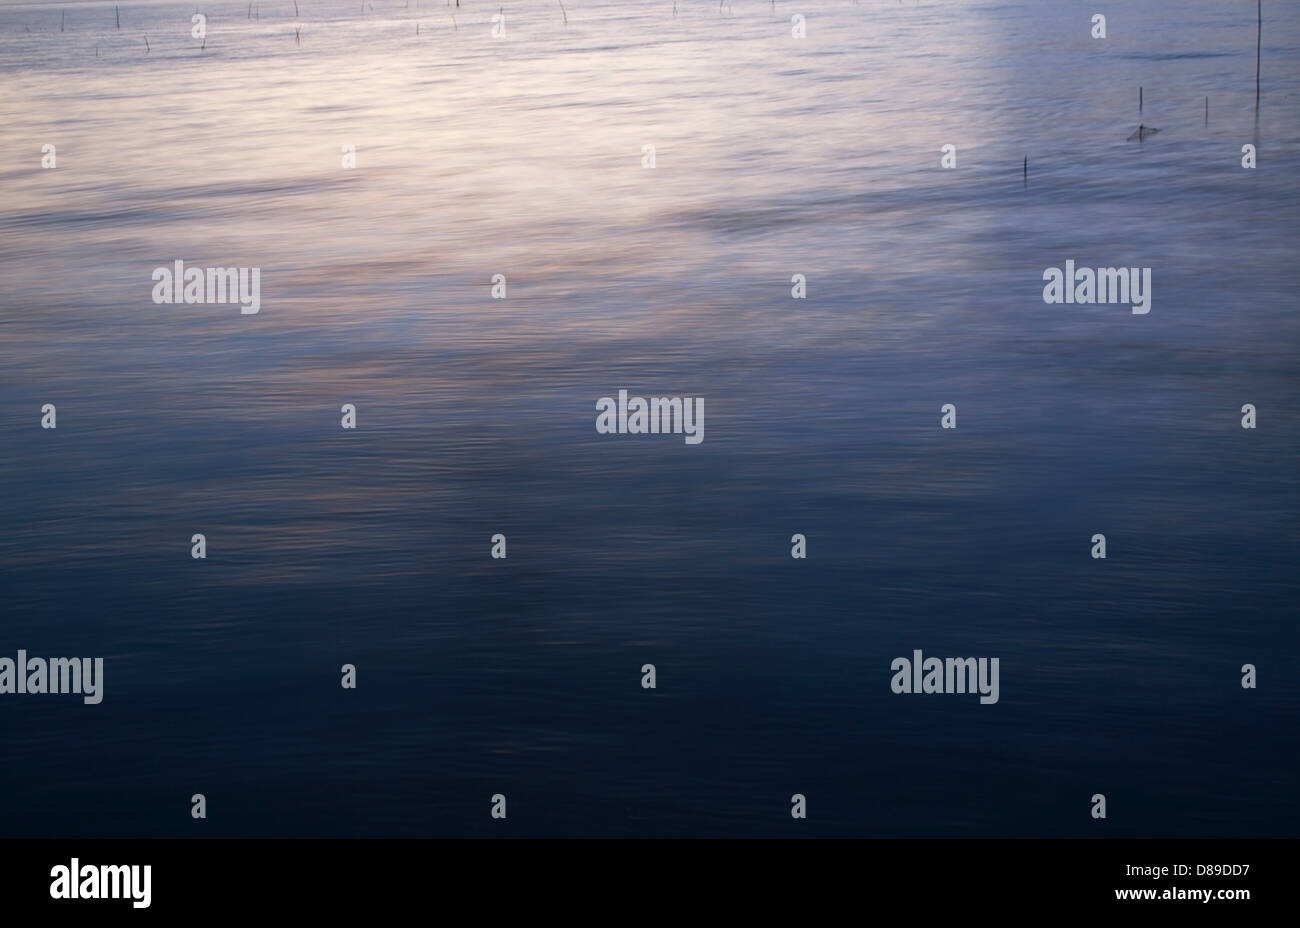 Trasimeno Lake water reflections in the evenings - Stock Image